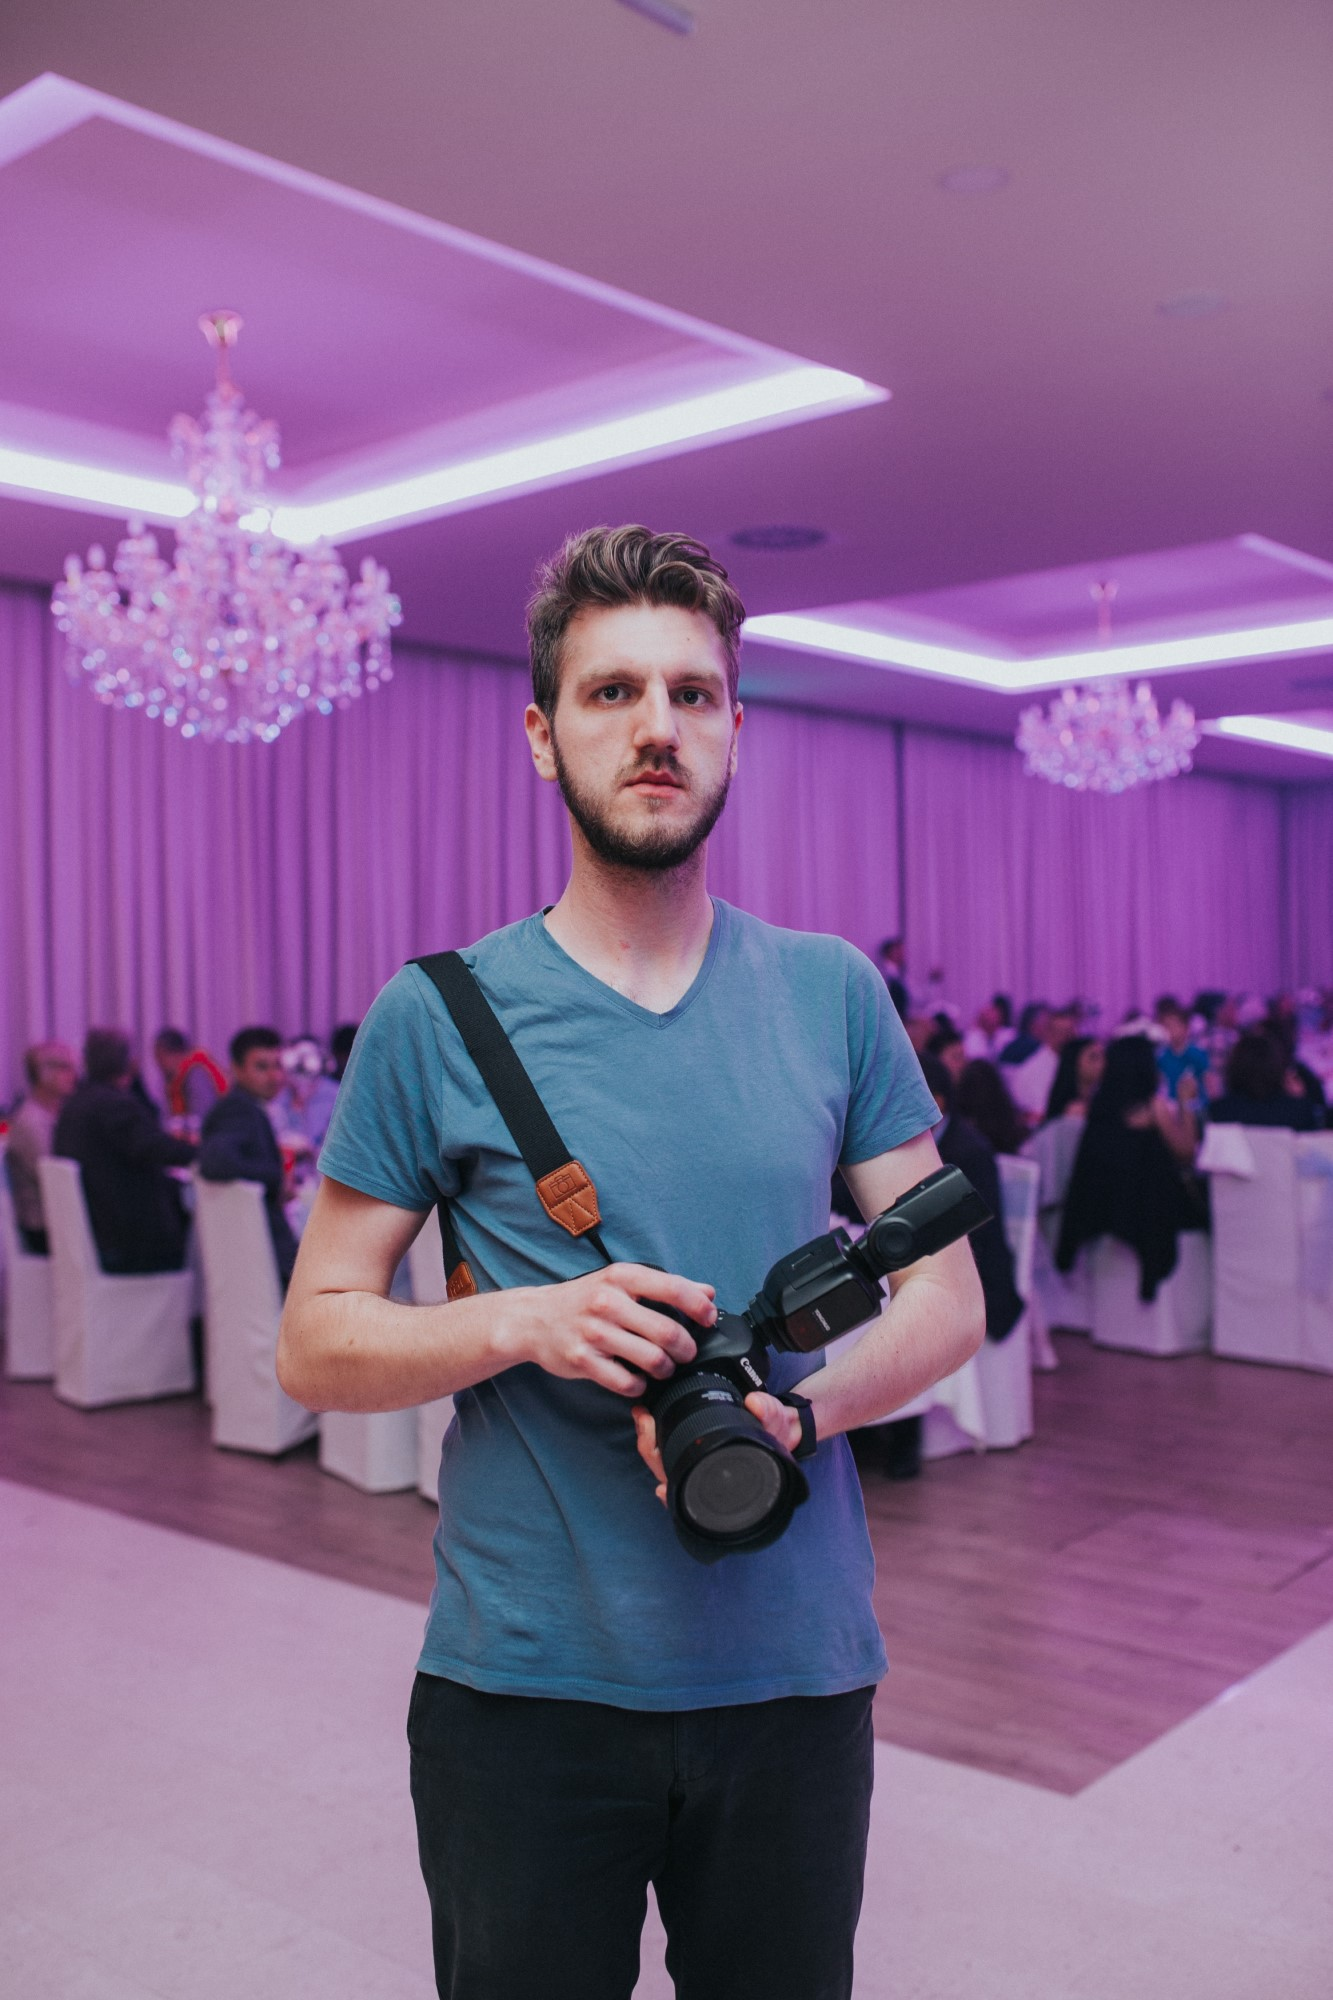 These Wedding Photography Gear Tips Will Change Your Life image